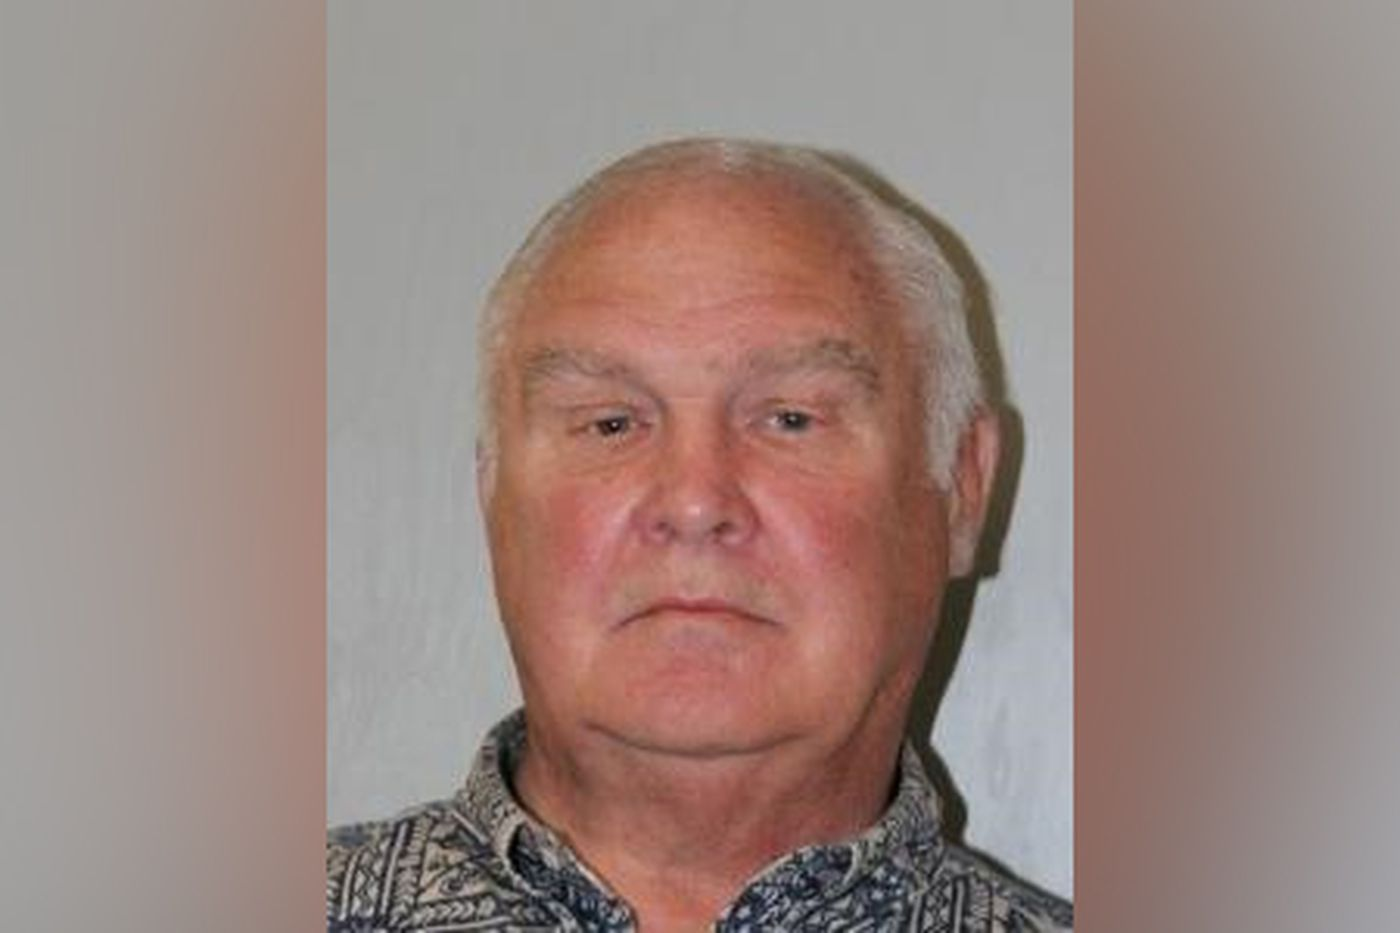 Long-time Hawaii law enforcement officer arrested at airport